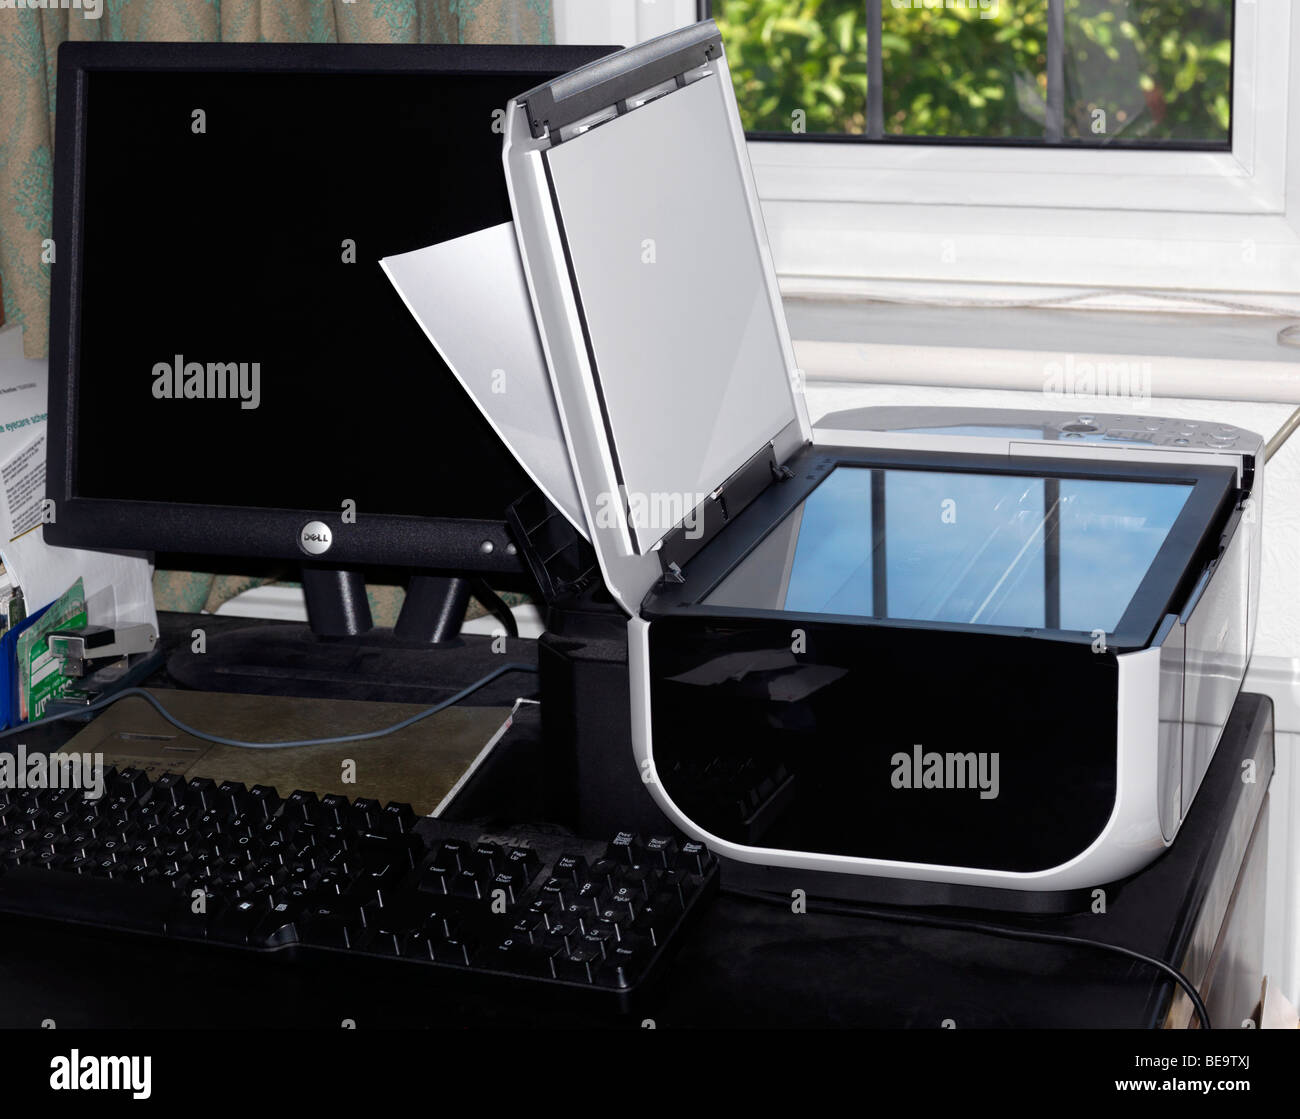 Canon MP 210 all in one scanner copier - Stock Image